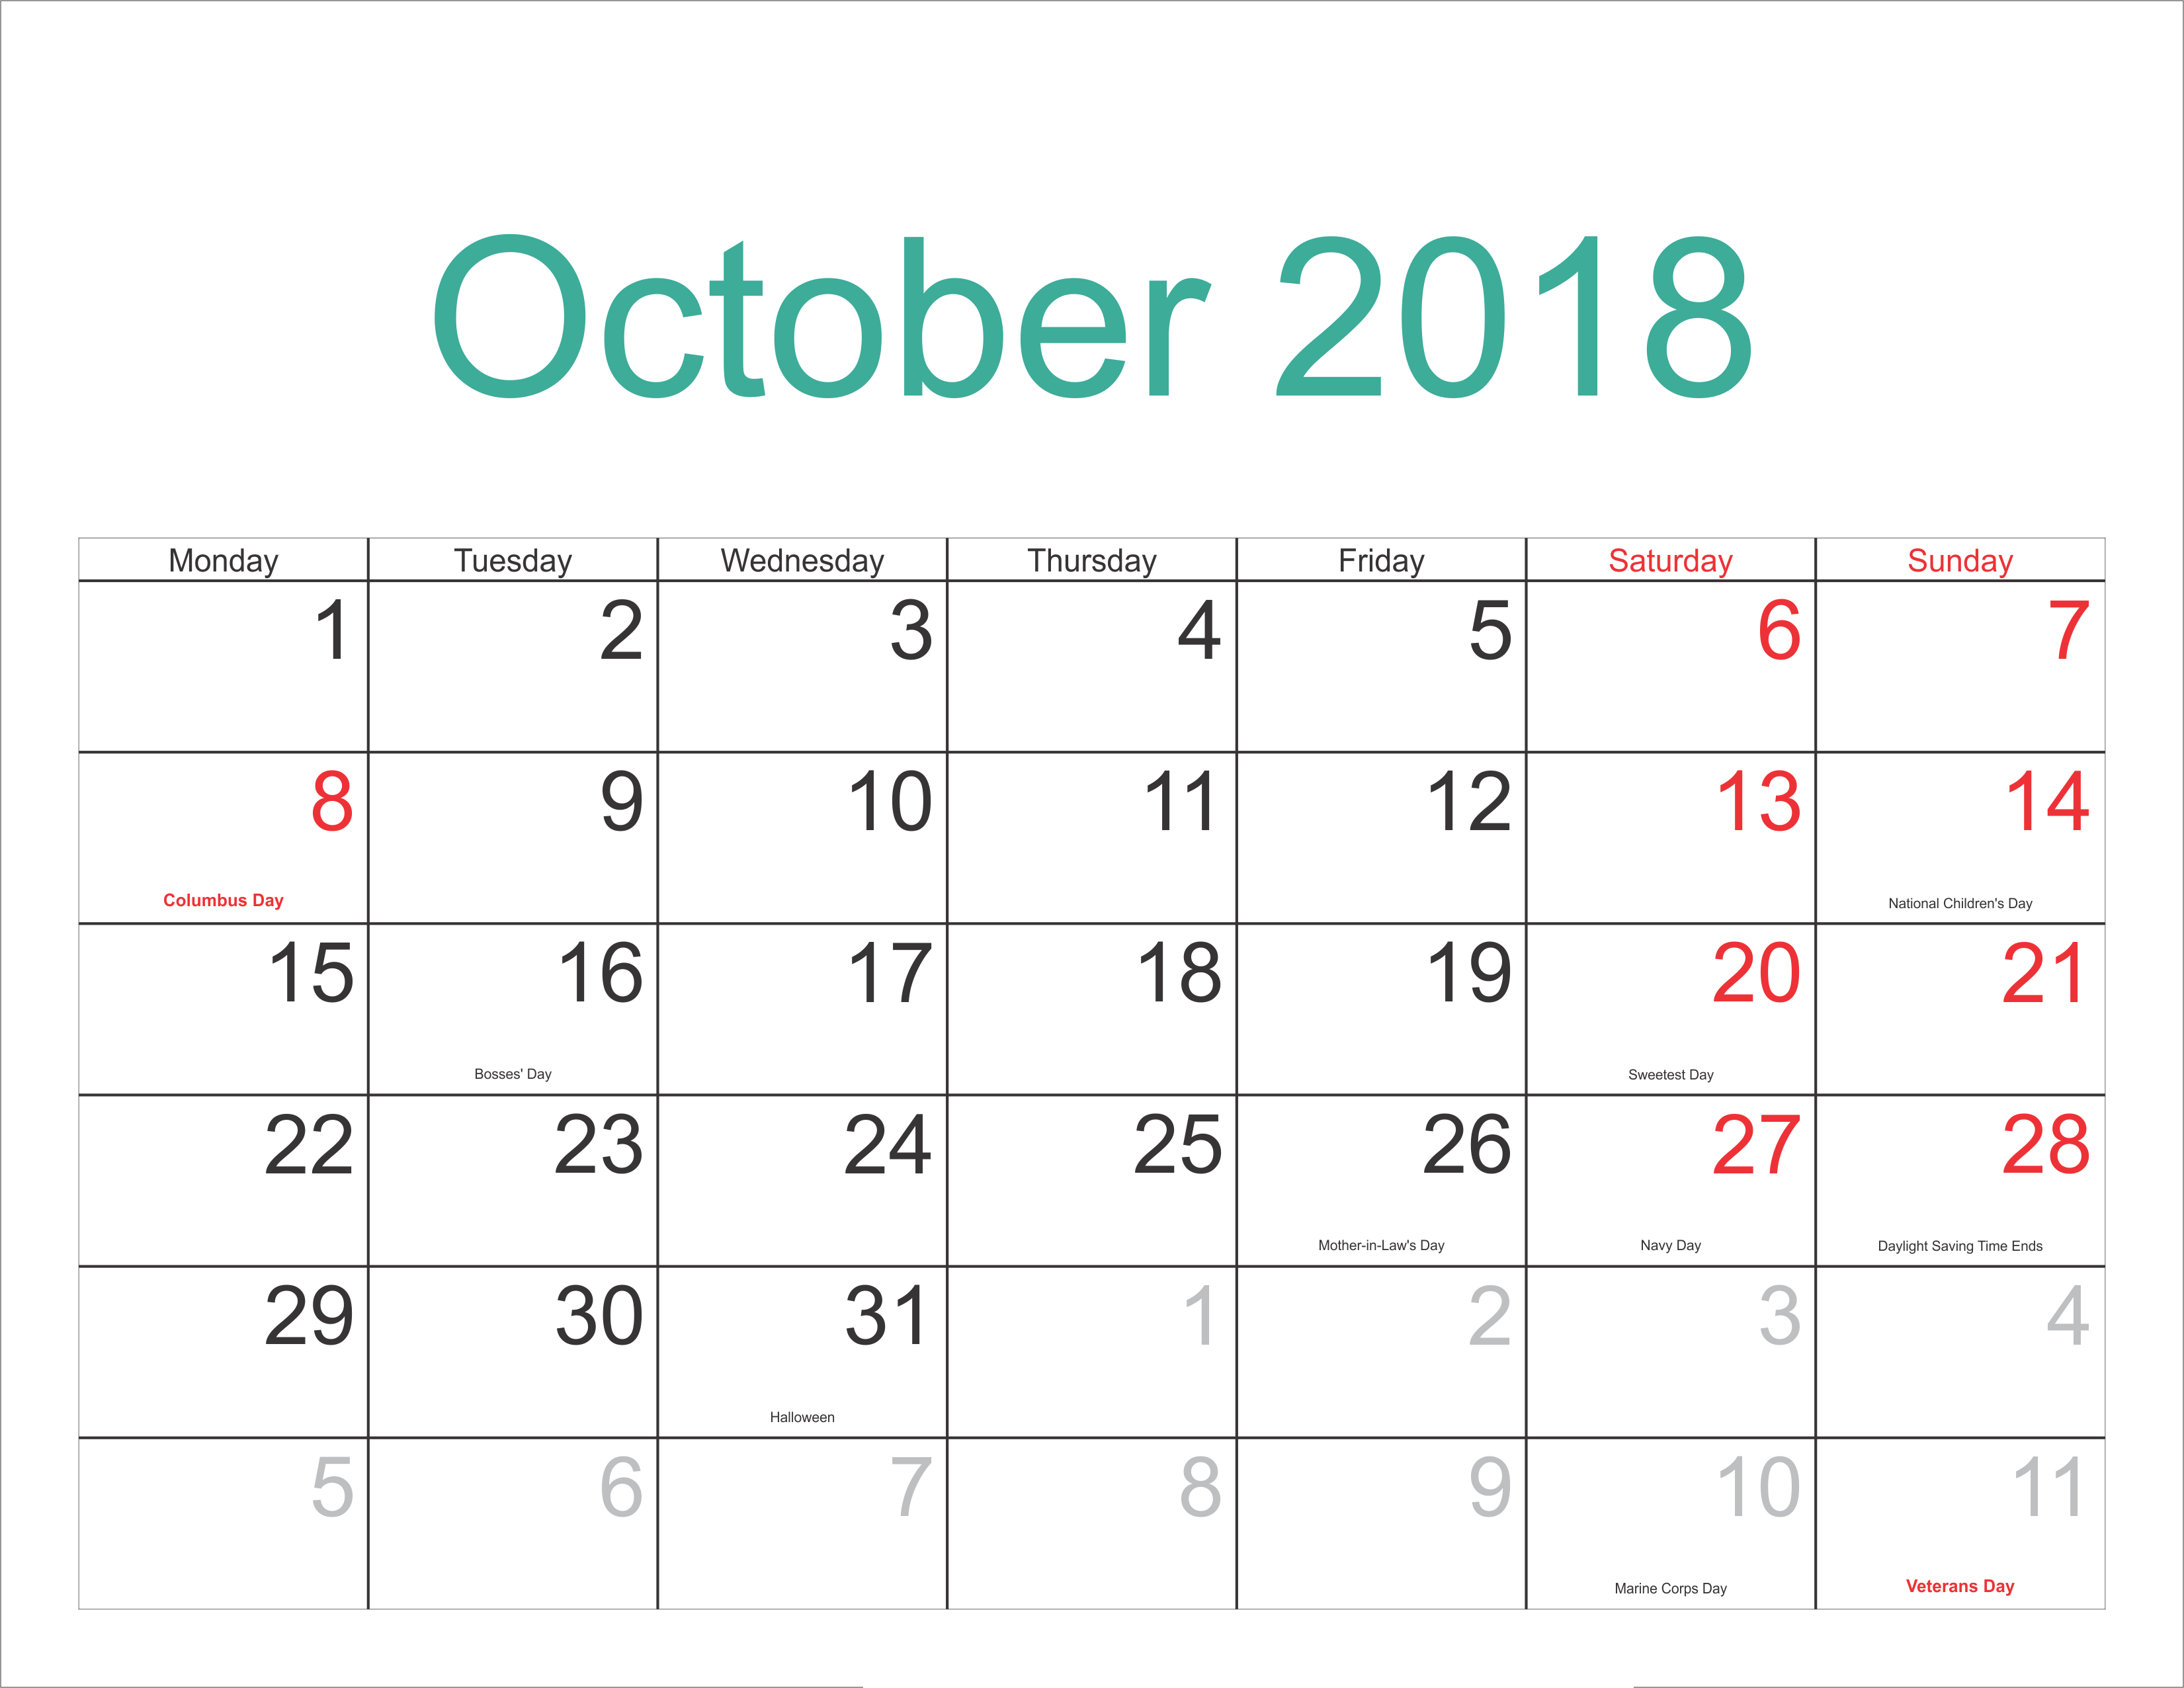 October 2018 Calendar With Holidays Full